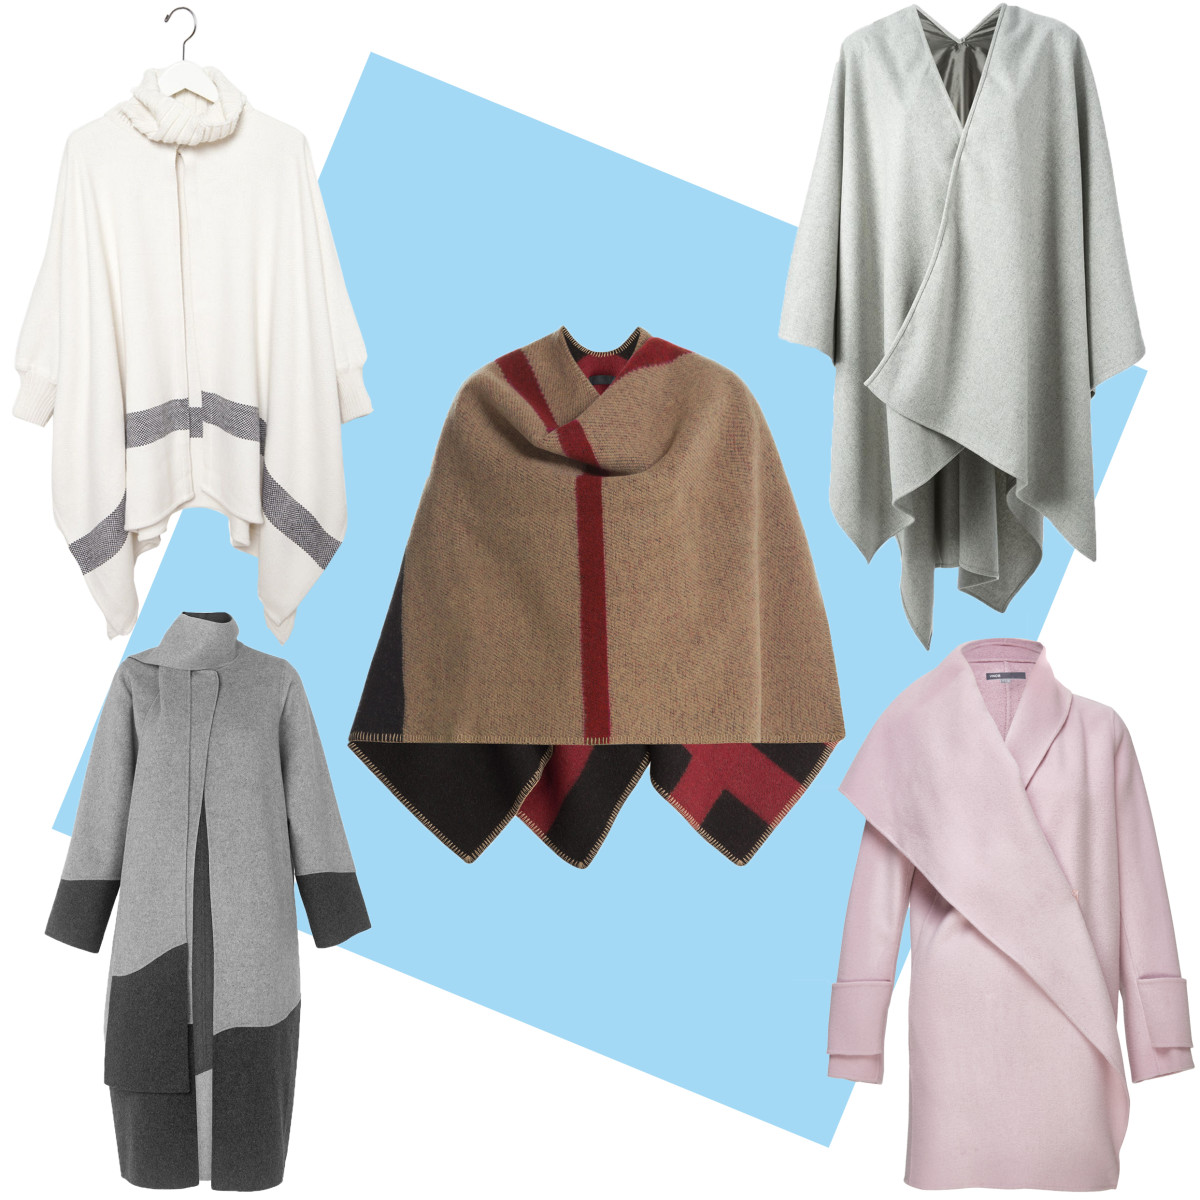 TOP LEFT: Apiece Apart neck knit poncho, $720, available at Apiece Apart; CENTER: Burberry Prorsum check blanket, $1,495, available at Stylebop; TOP RIGHT: Golden Goose Deluxe poncho coat, $500, available at Farfetch; BOTTOM LEFT: Manning color block coat, $560, available at Whistles; BOTTOM RIGHT: Vince drape collar coat, $675, available at Bloomingdale's.